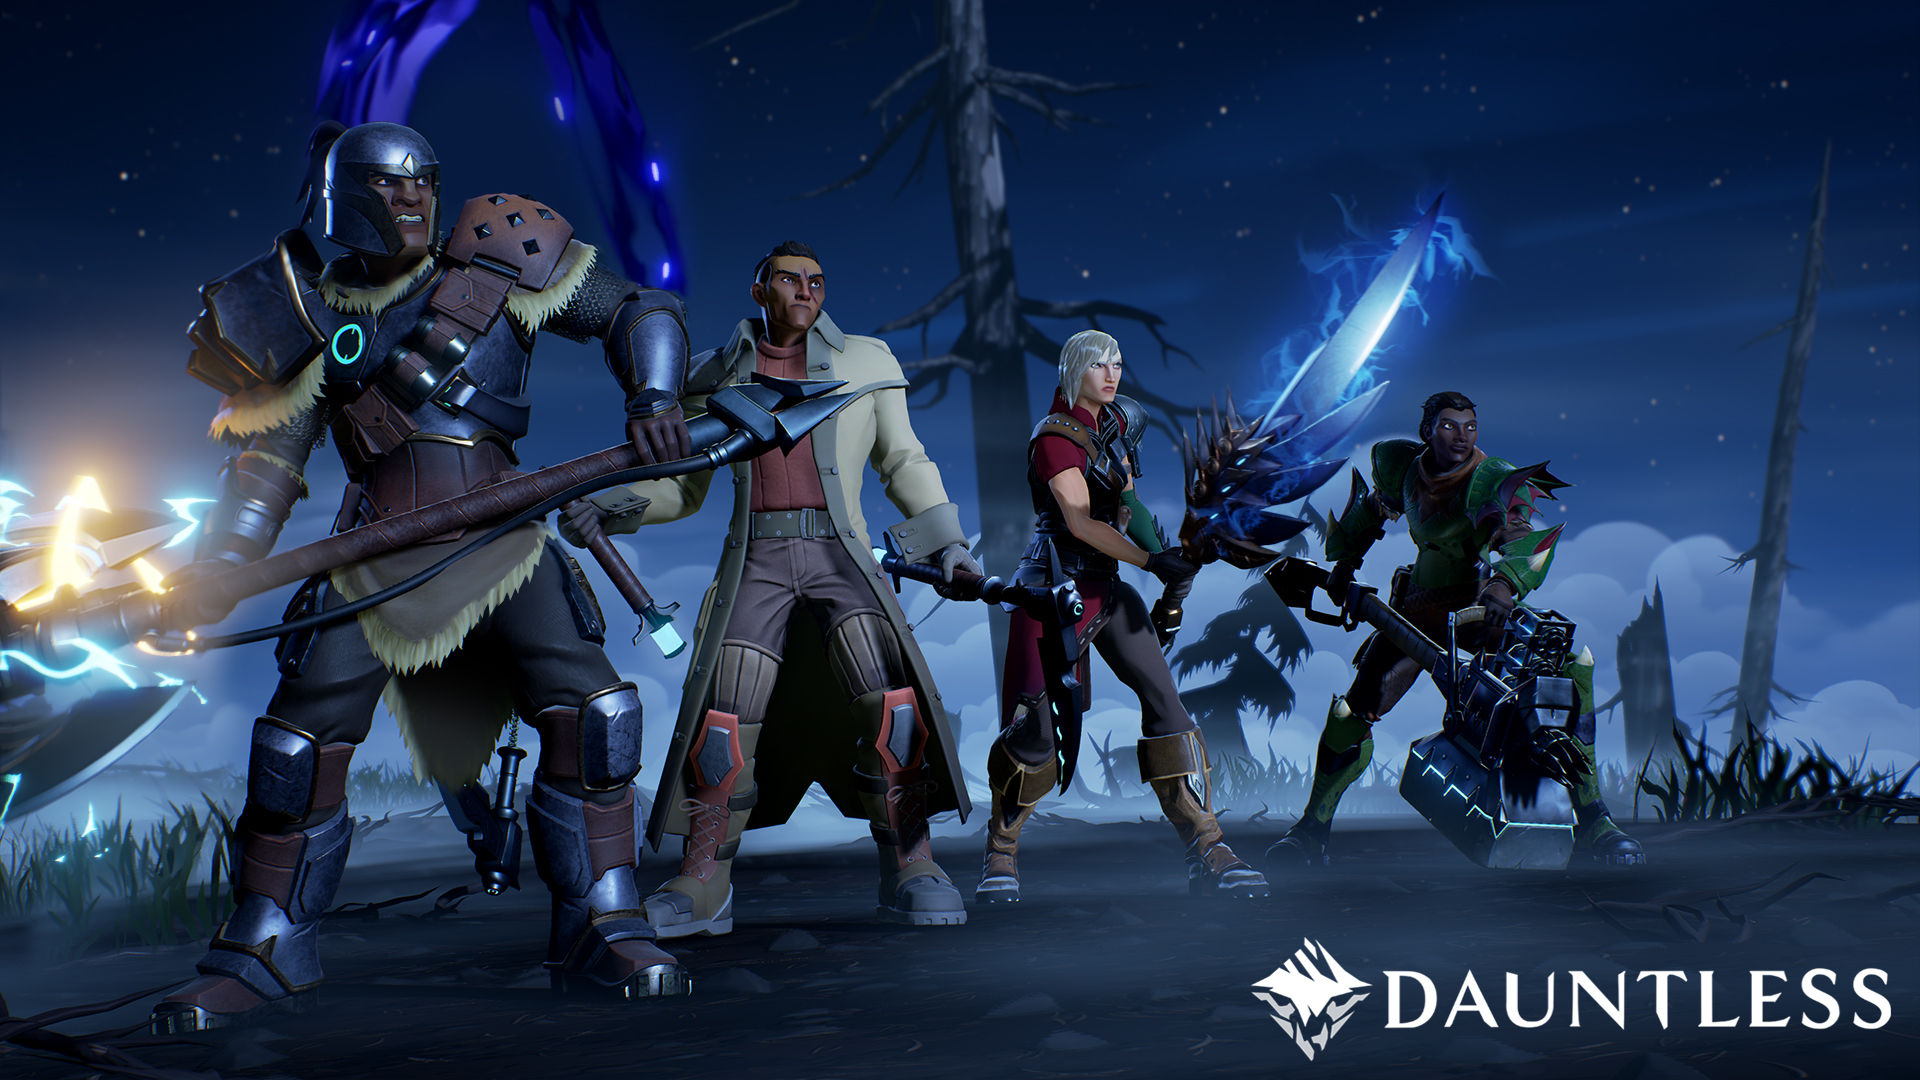 Dauntless Open Beta Delayed to Early 2018 to Incorporate Feedback